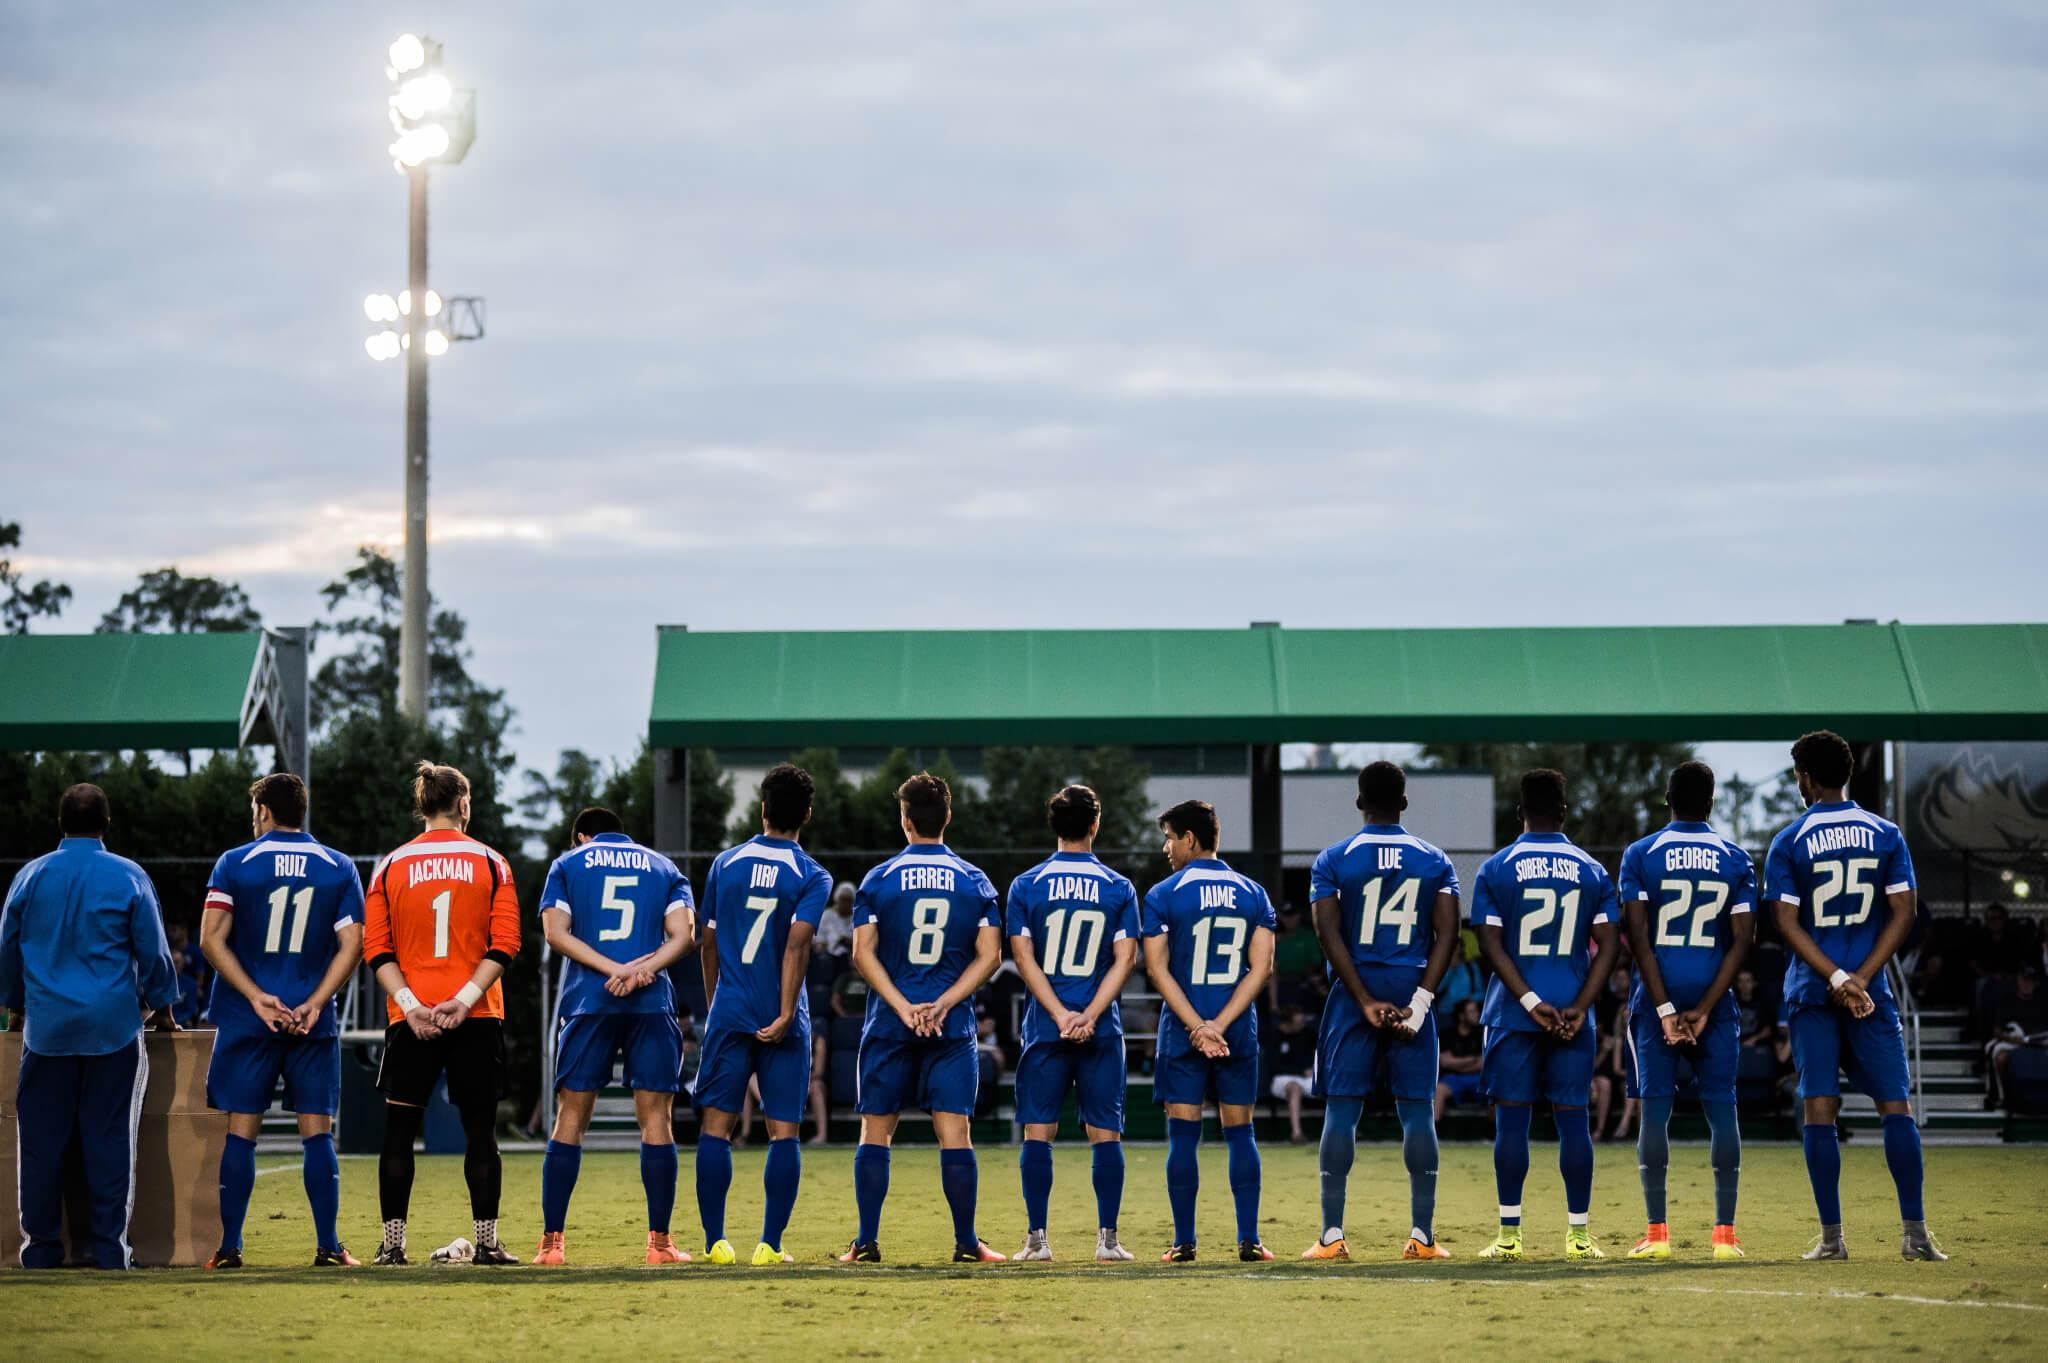 No.11 FGCU men's soccer loses 11-game win streak after 3-2 loss to UNF